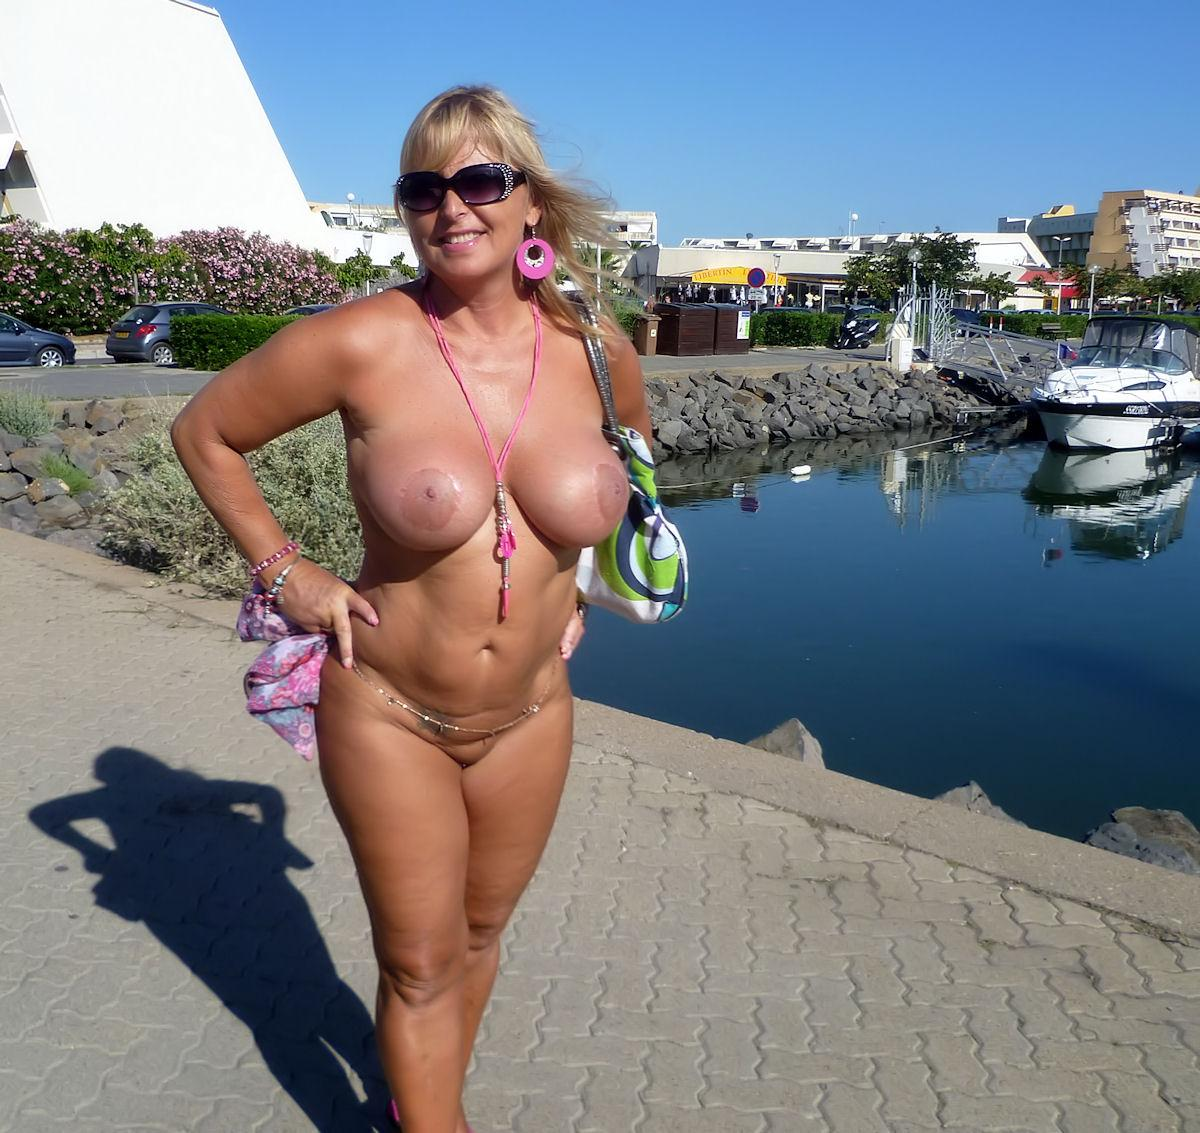 kik chat forum fotos nudisten